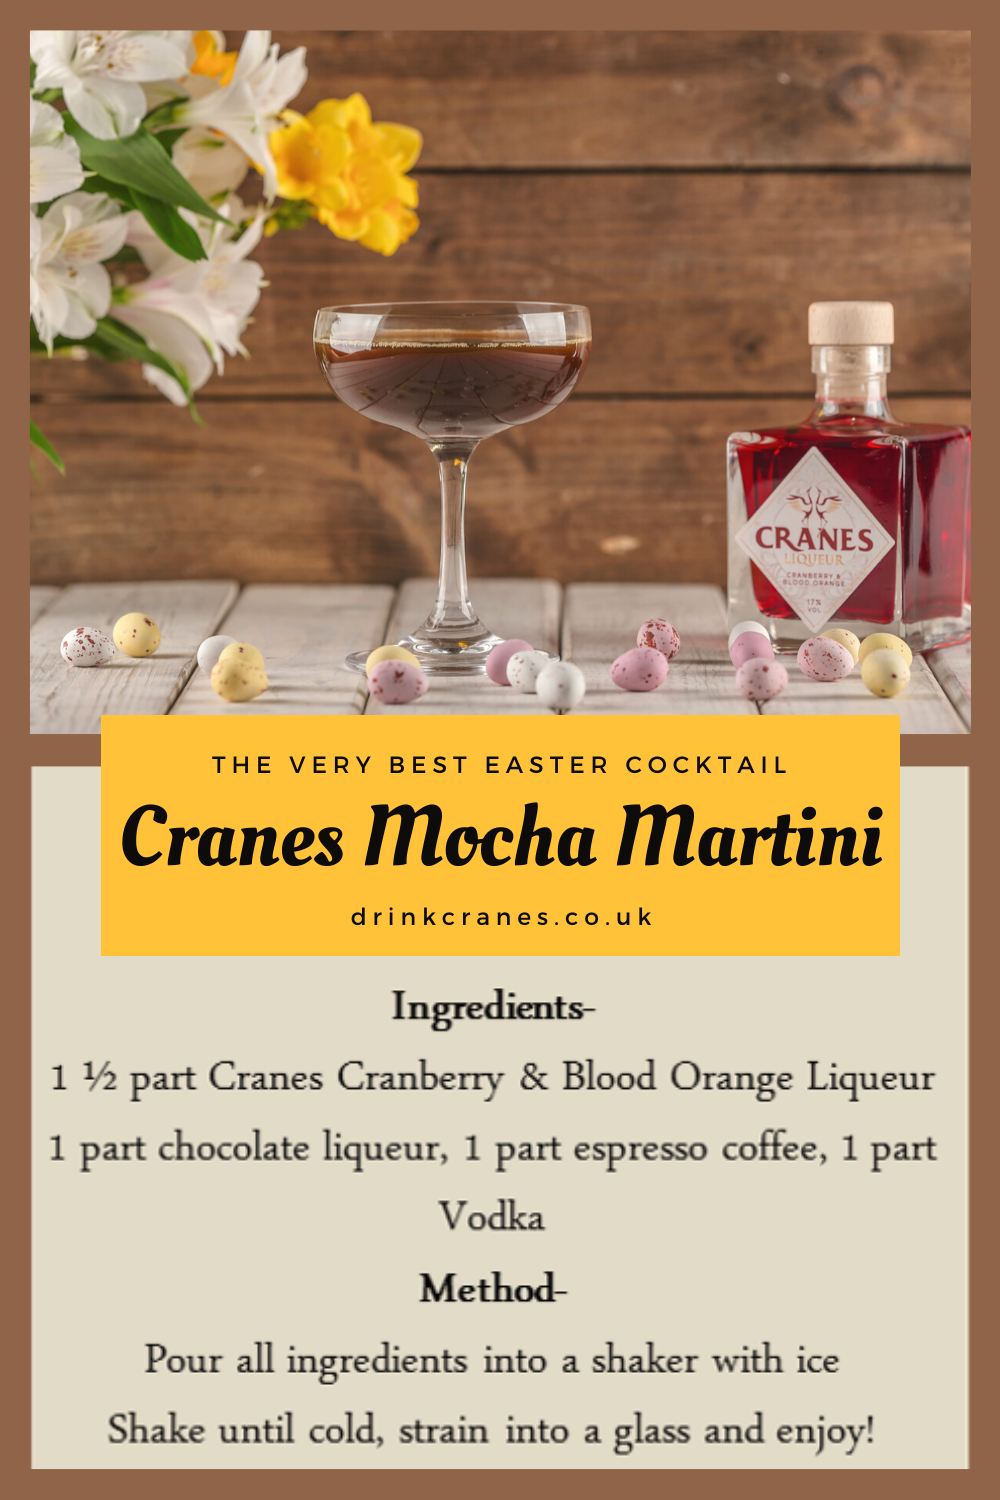 A Cranes Mocha Martini is the perfect treat for Easter Sunday! Cranes Cranberry & Blood Orange Liqueur turns this classic cocktail into a nostalgic, delicious treat to enjoy in the Sun this Easter! Cranes Liqueur is available on Ocado and Amazon #Easter #Mocha #Martini #cocktail #drink #chocolateeggs #sun #sunday #Spring #liqueur #cranberry #bloodorange #Ocado #Amazon